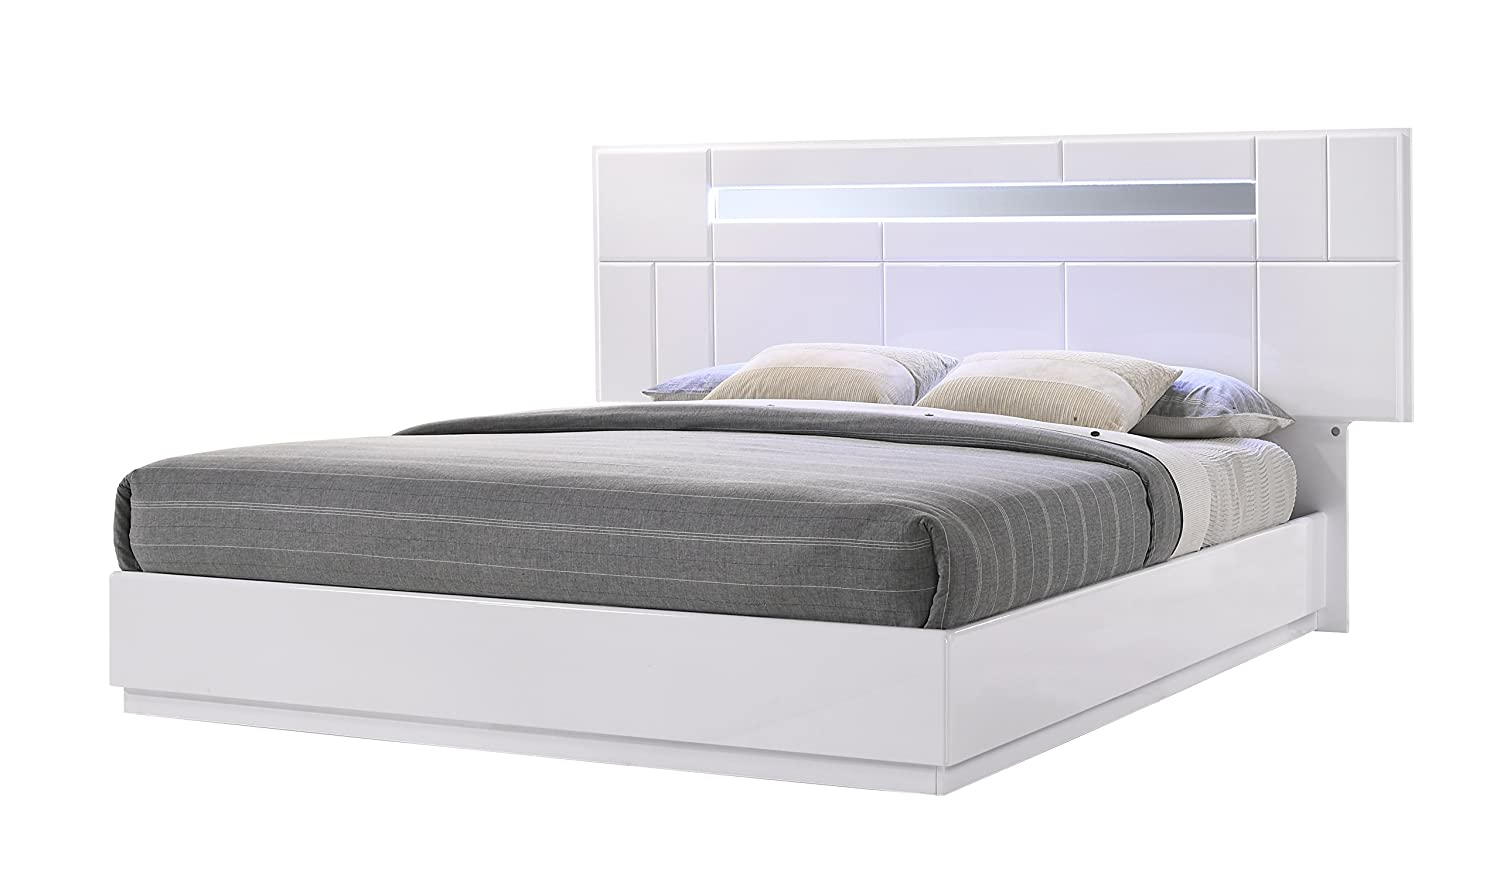 J and M Furniture Palermo Bed, Queen